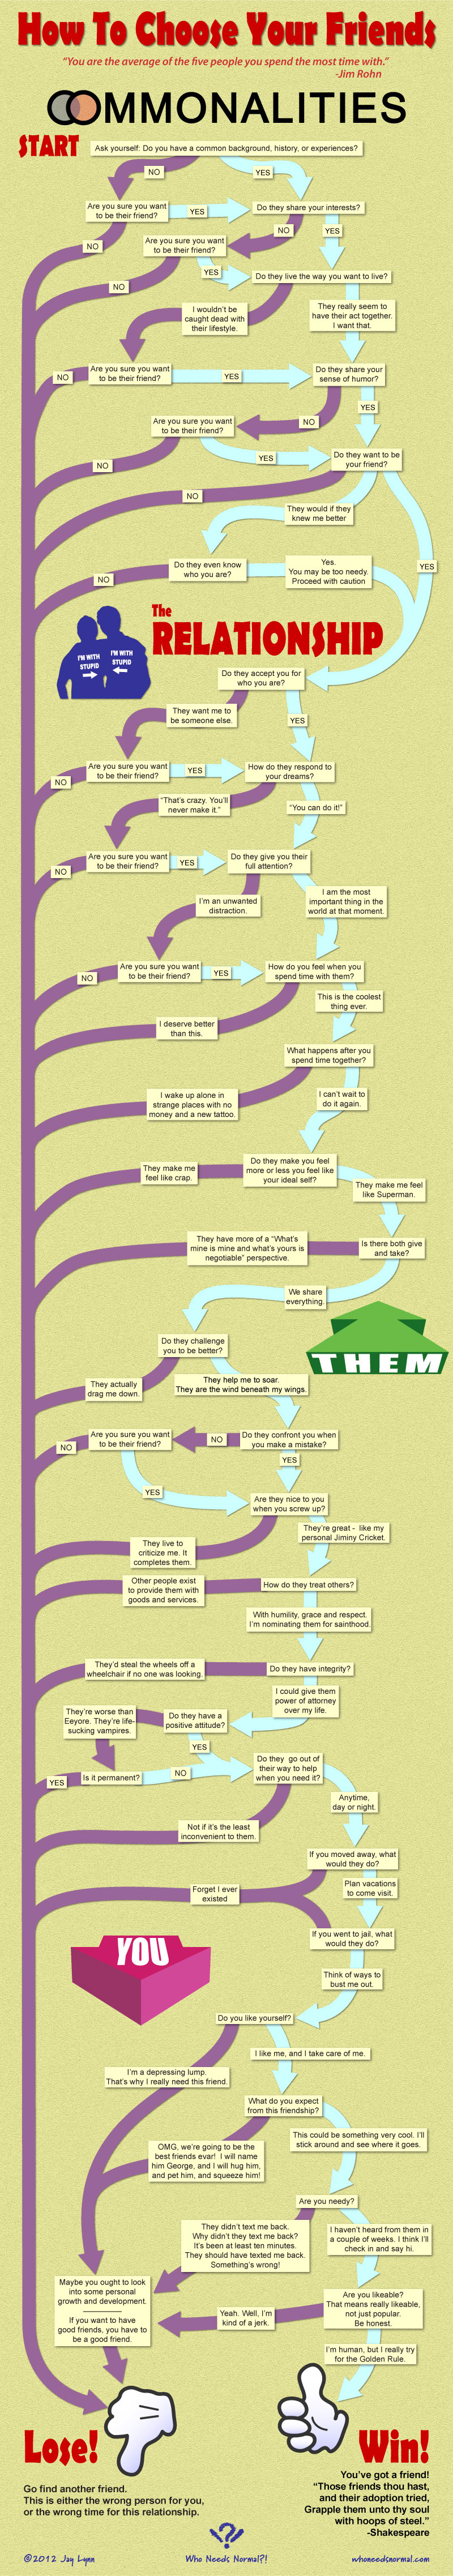 Infographic - How to Choose Your Friends